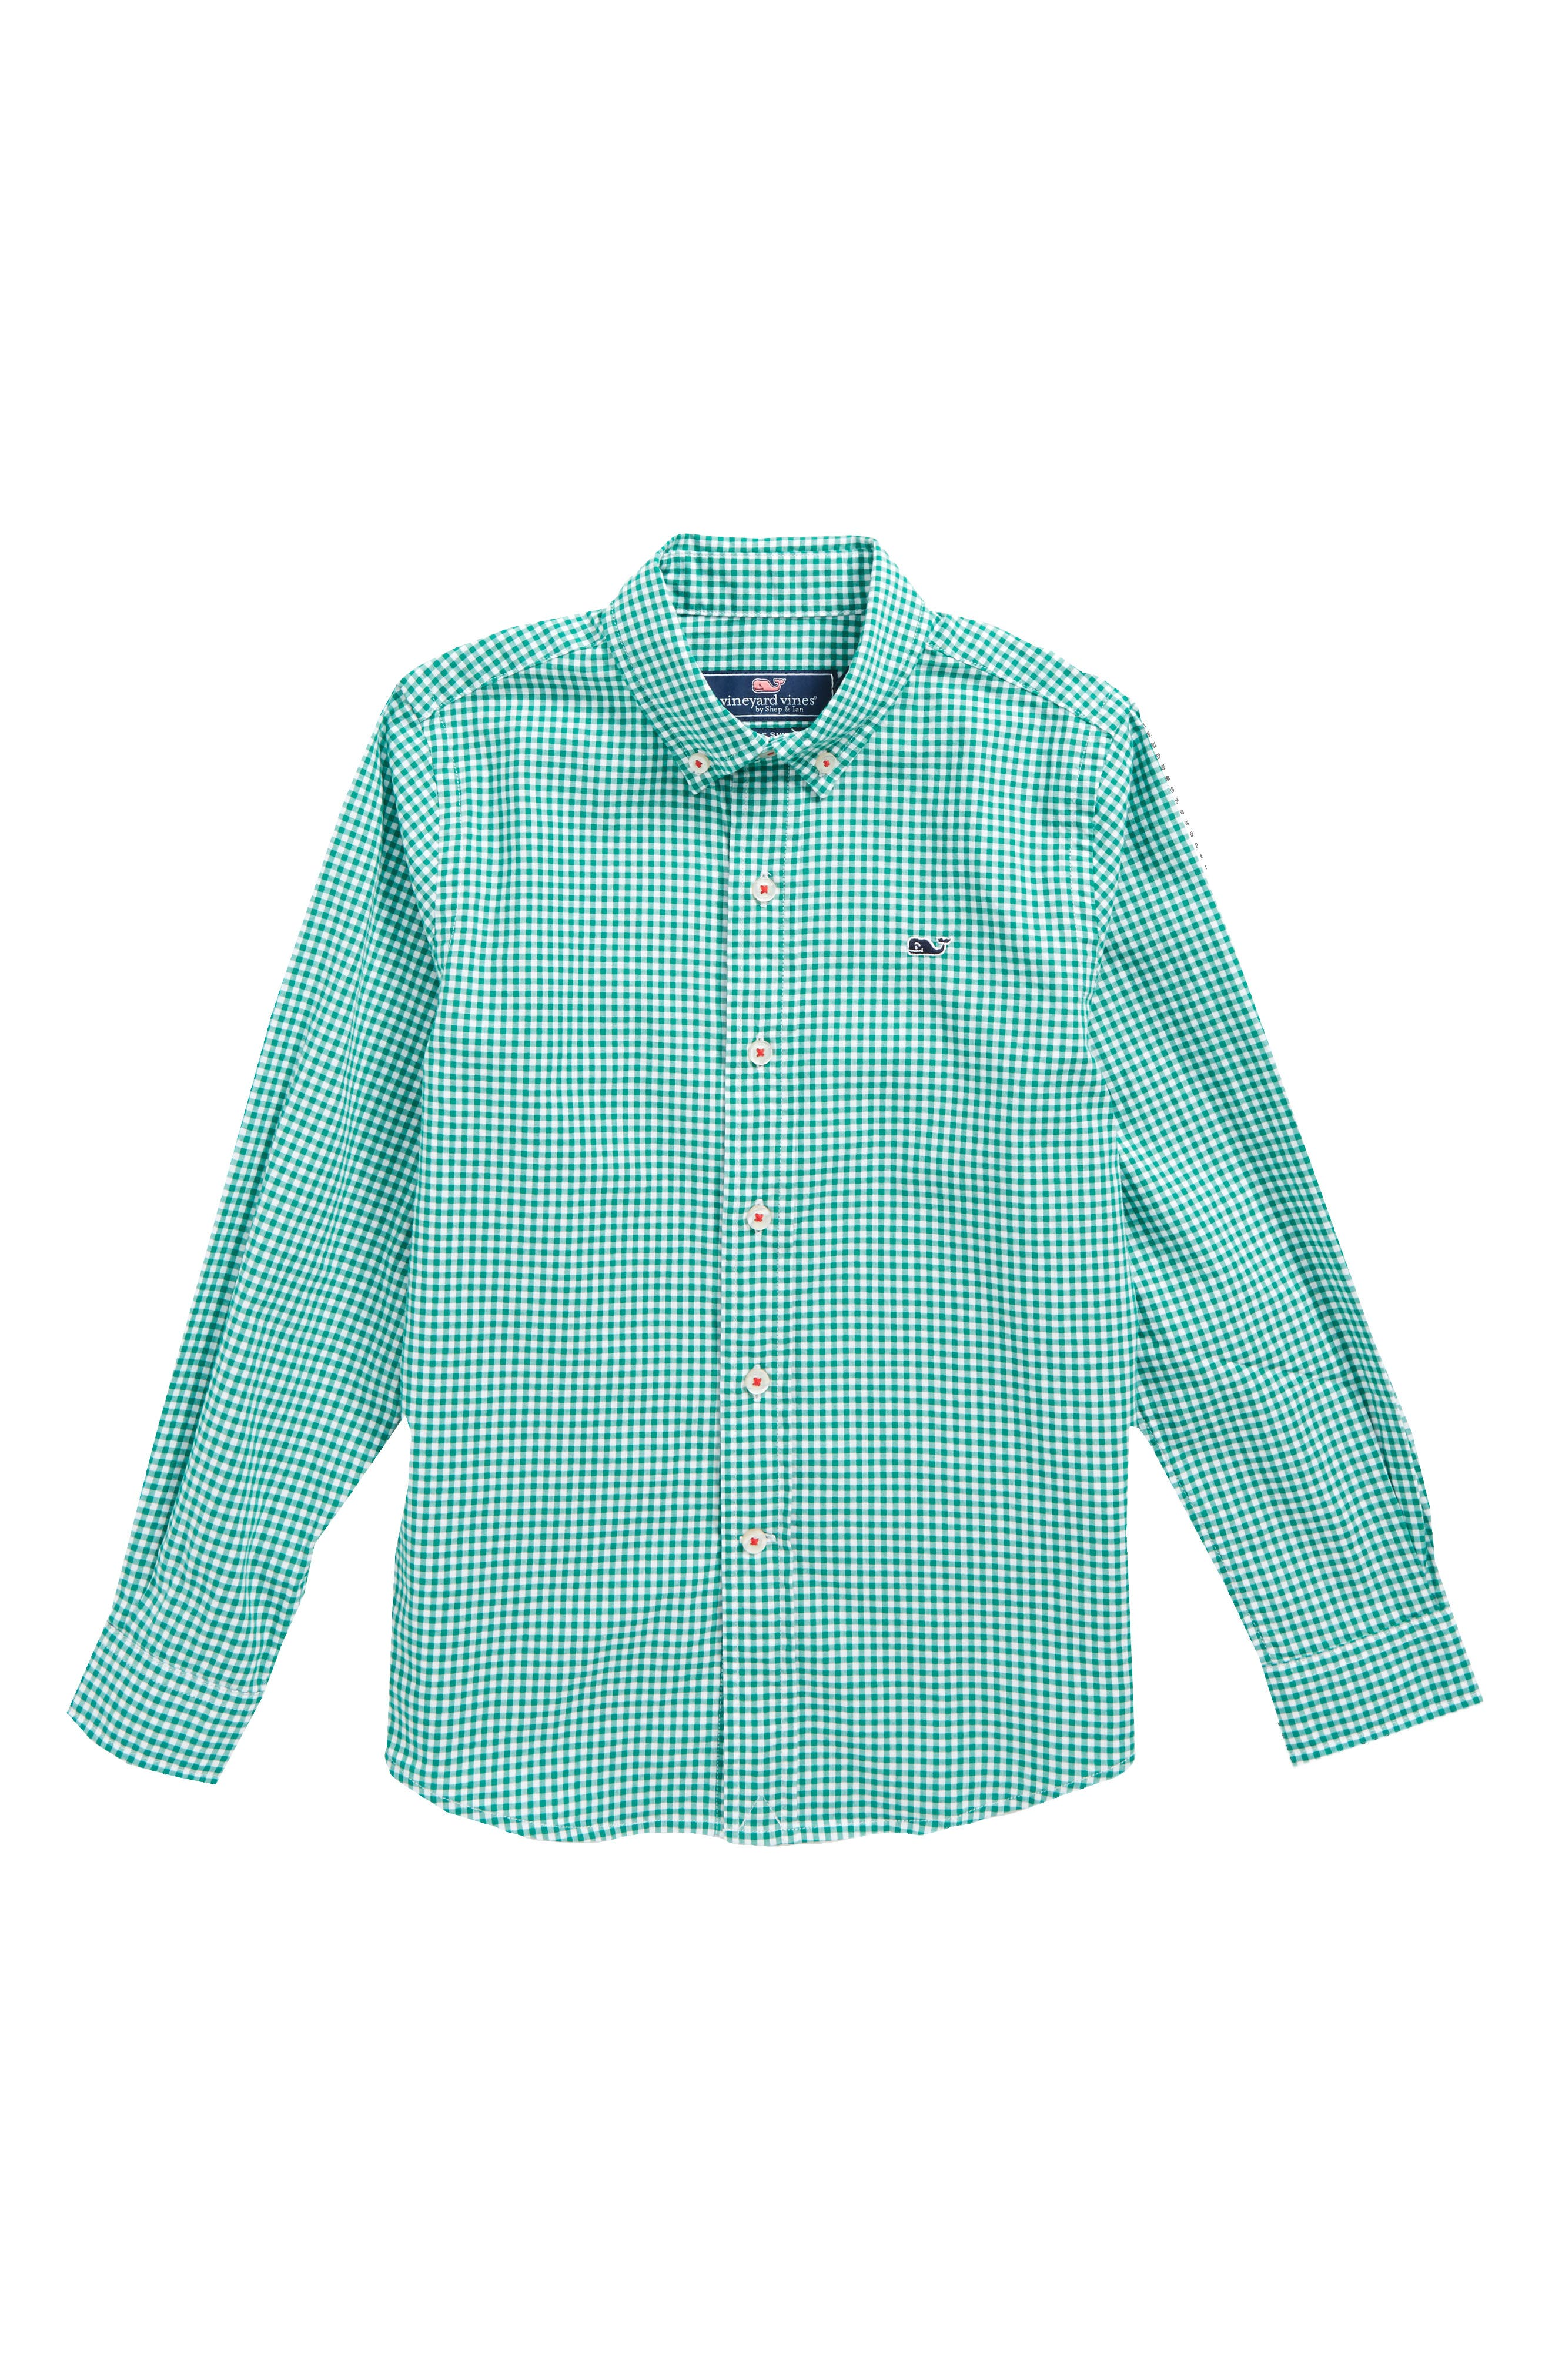 Old Town Gingham Whale Shirt,                         Main,                         color, 350